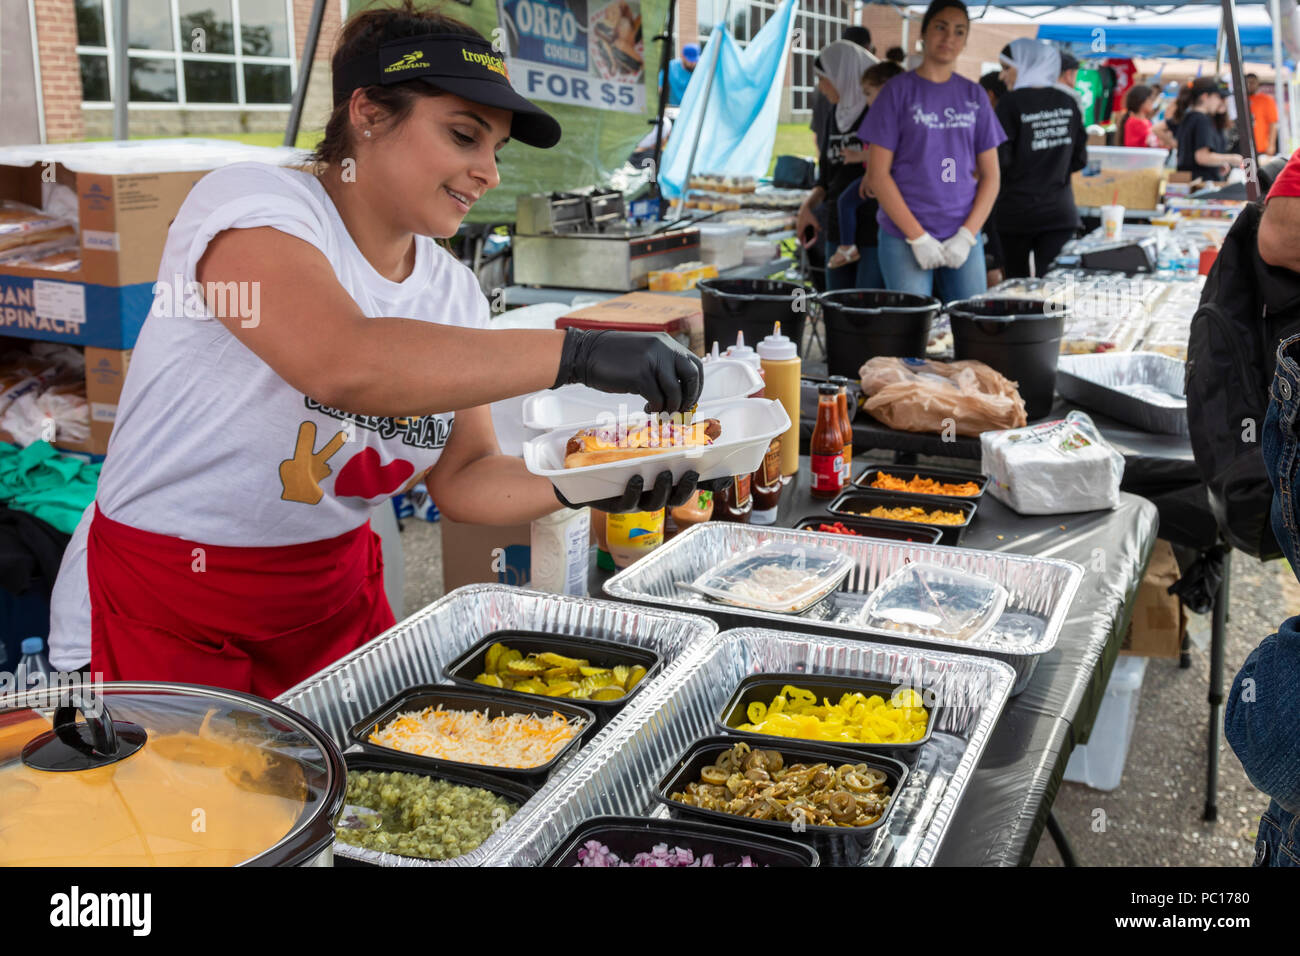 Dearborn, Michigan - A woman adds toppings to a halal hot